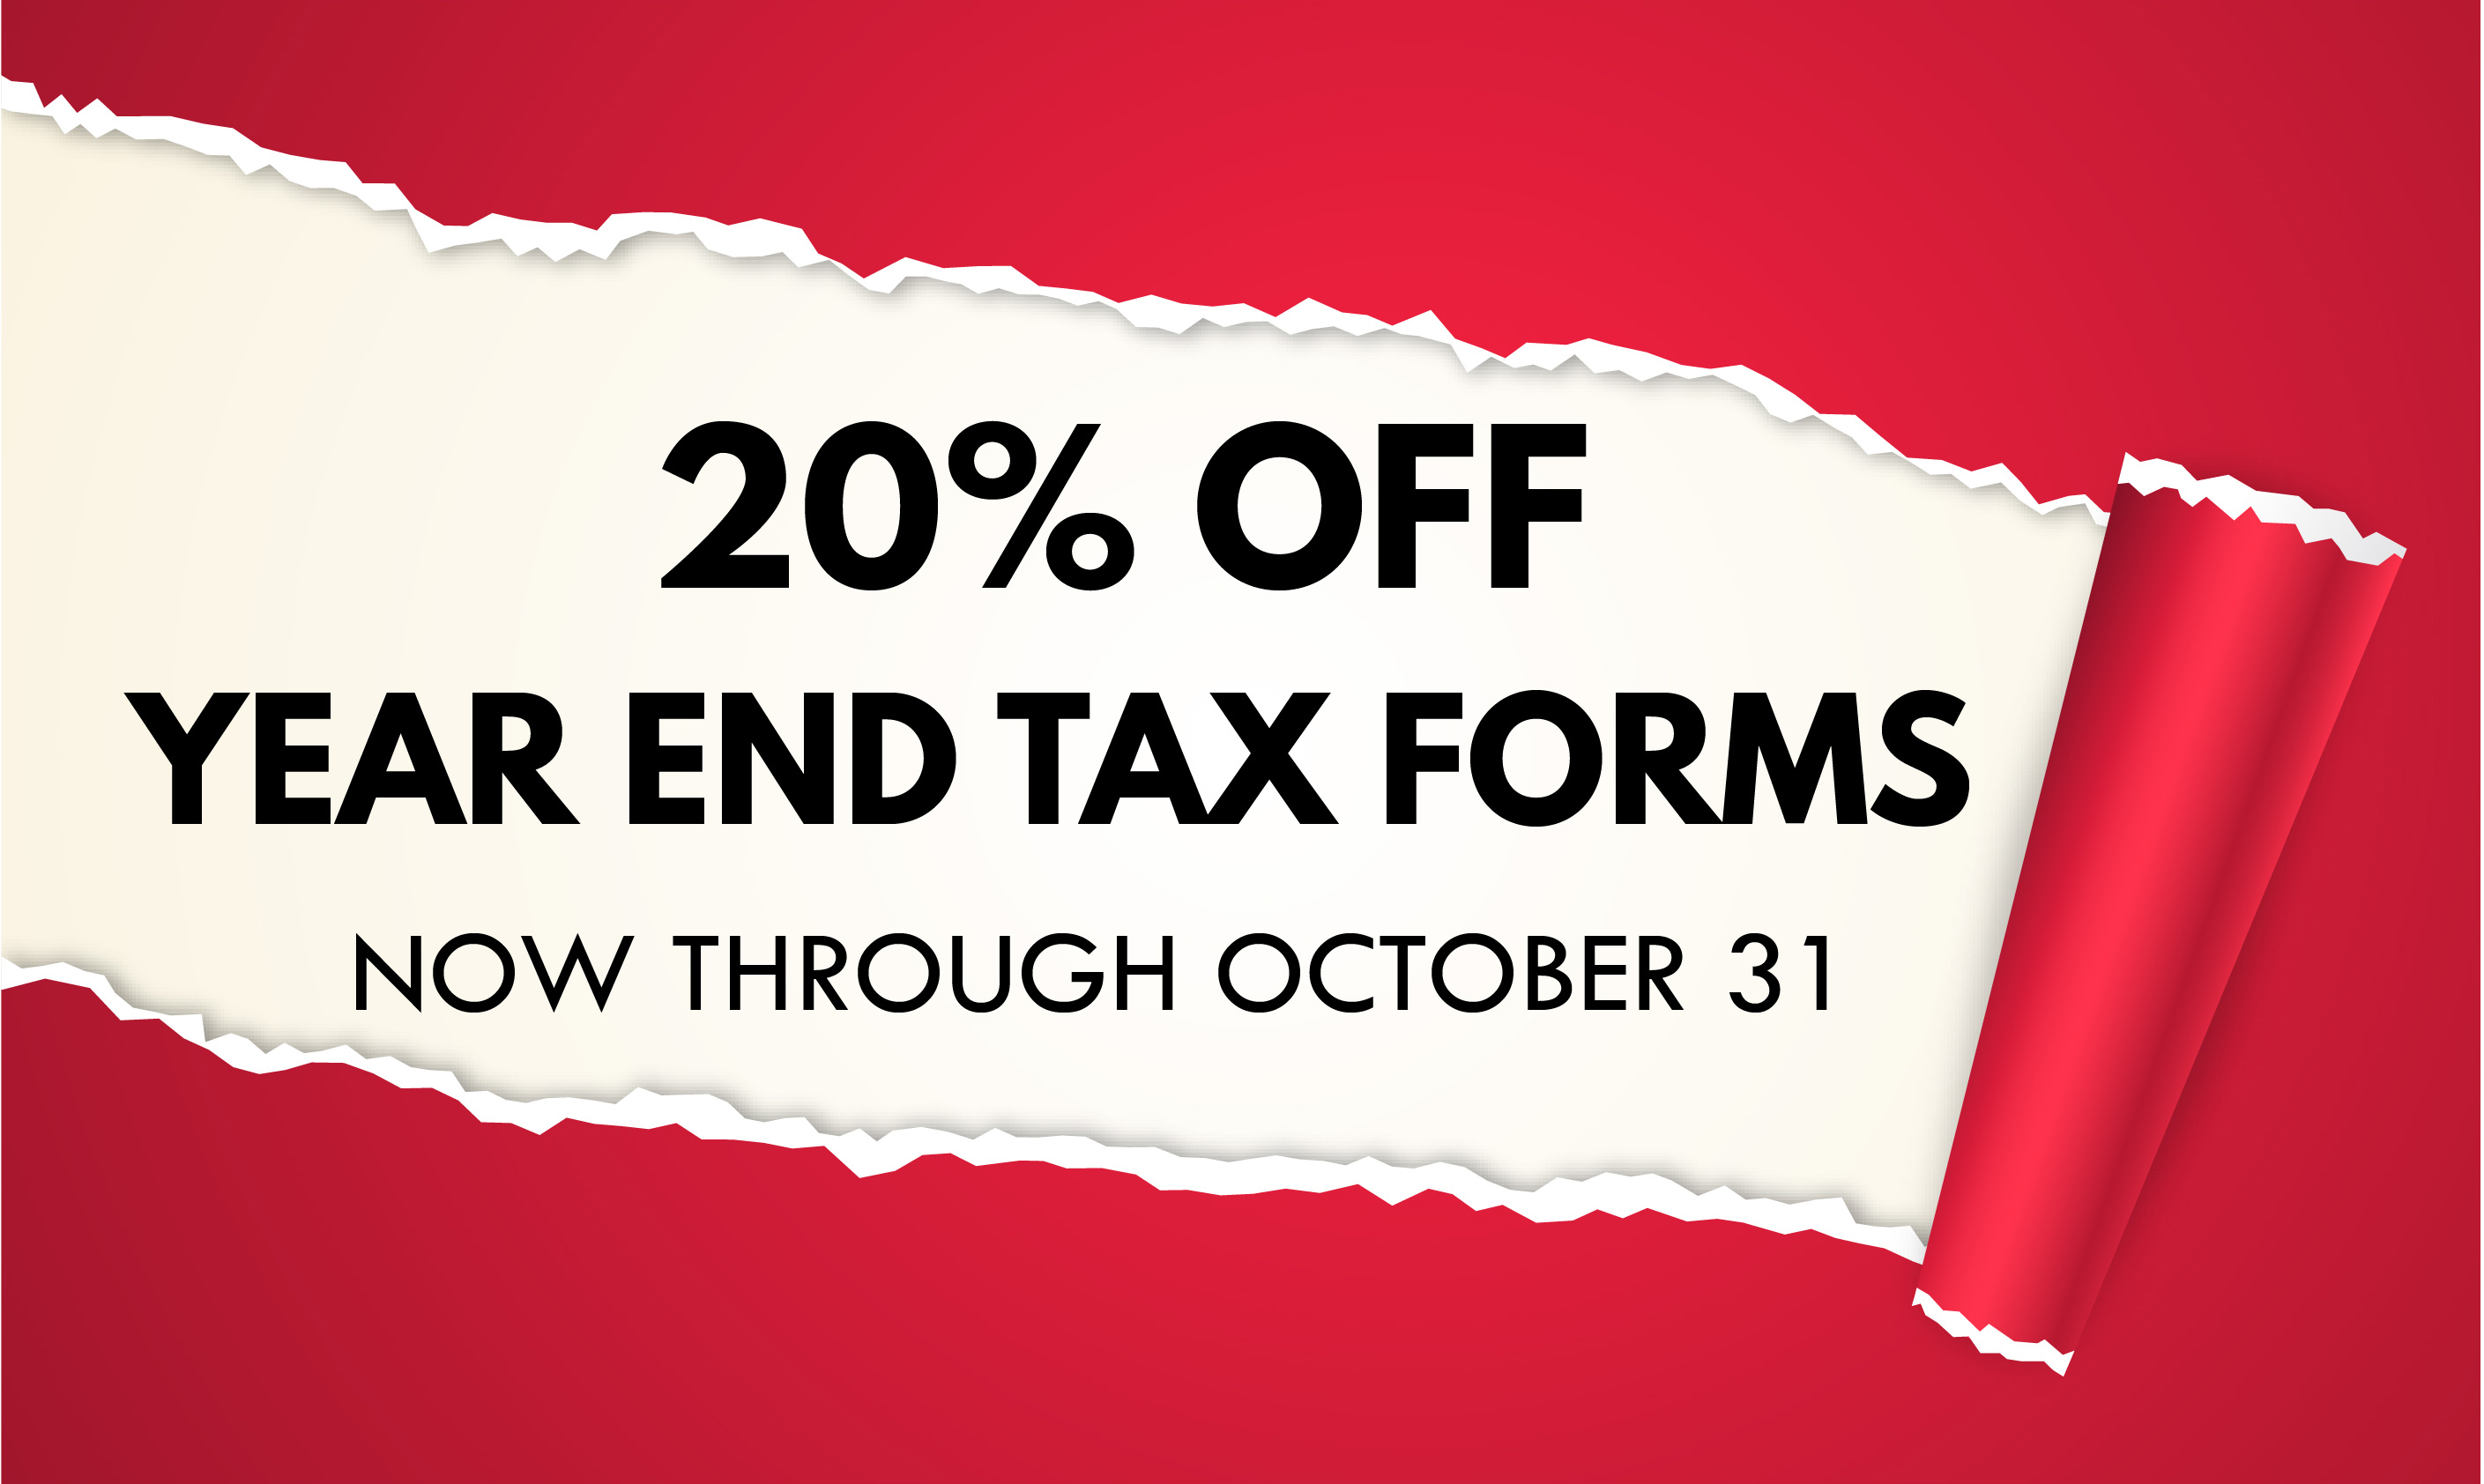 20% OFF YEAR-END TAX FORMS NOW THROUGH OCTOBER 31